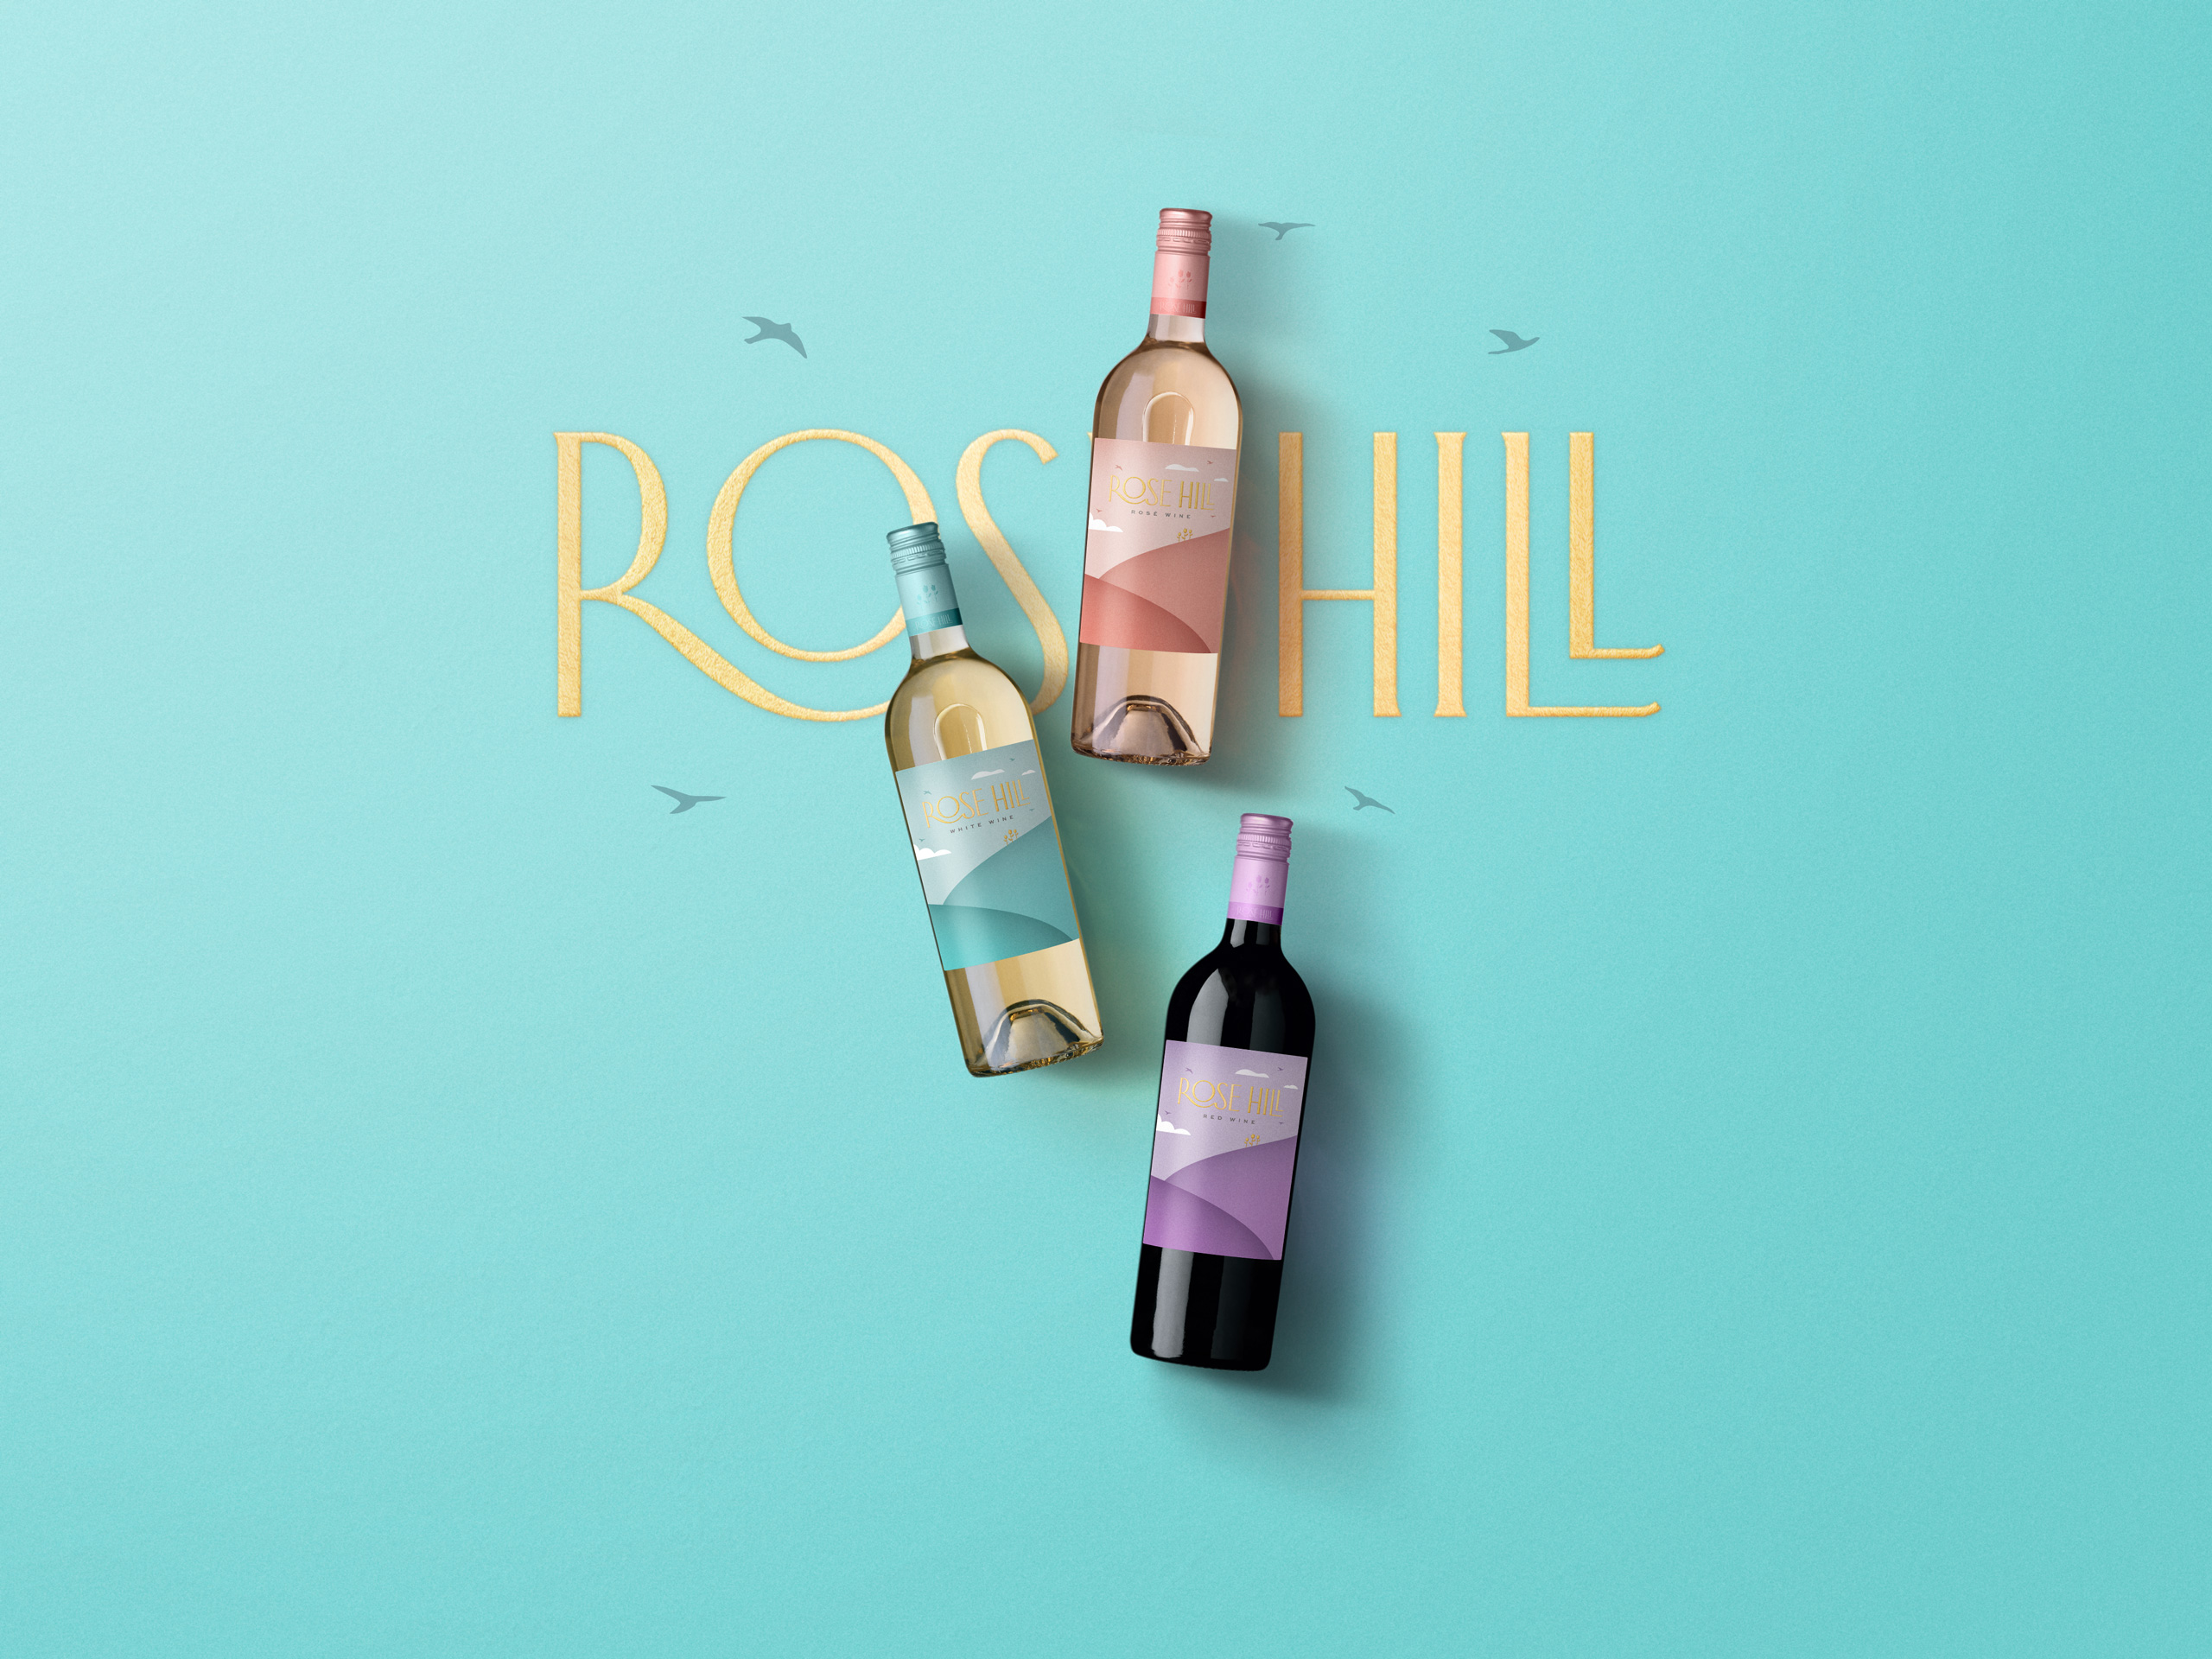 Rose Hill Wines